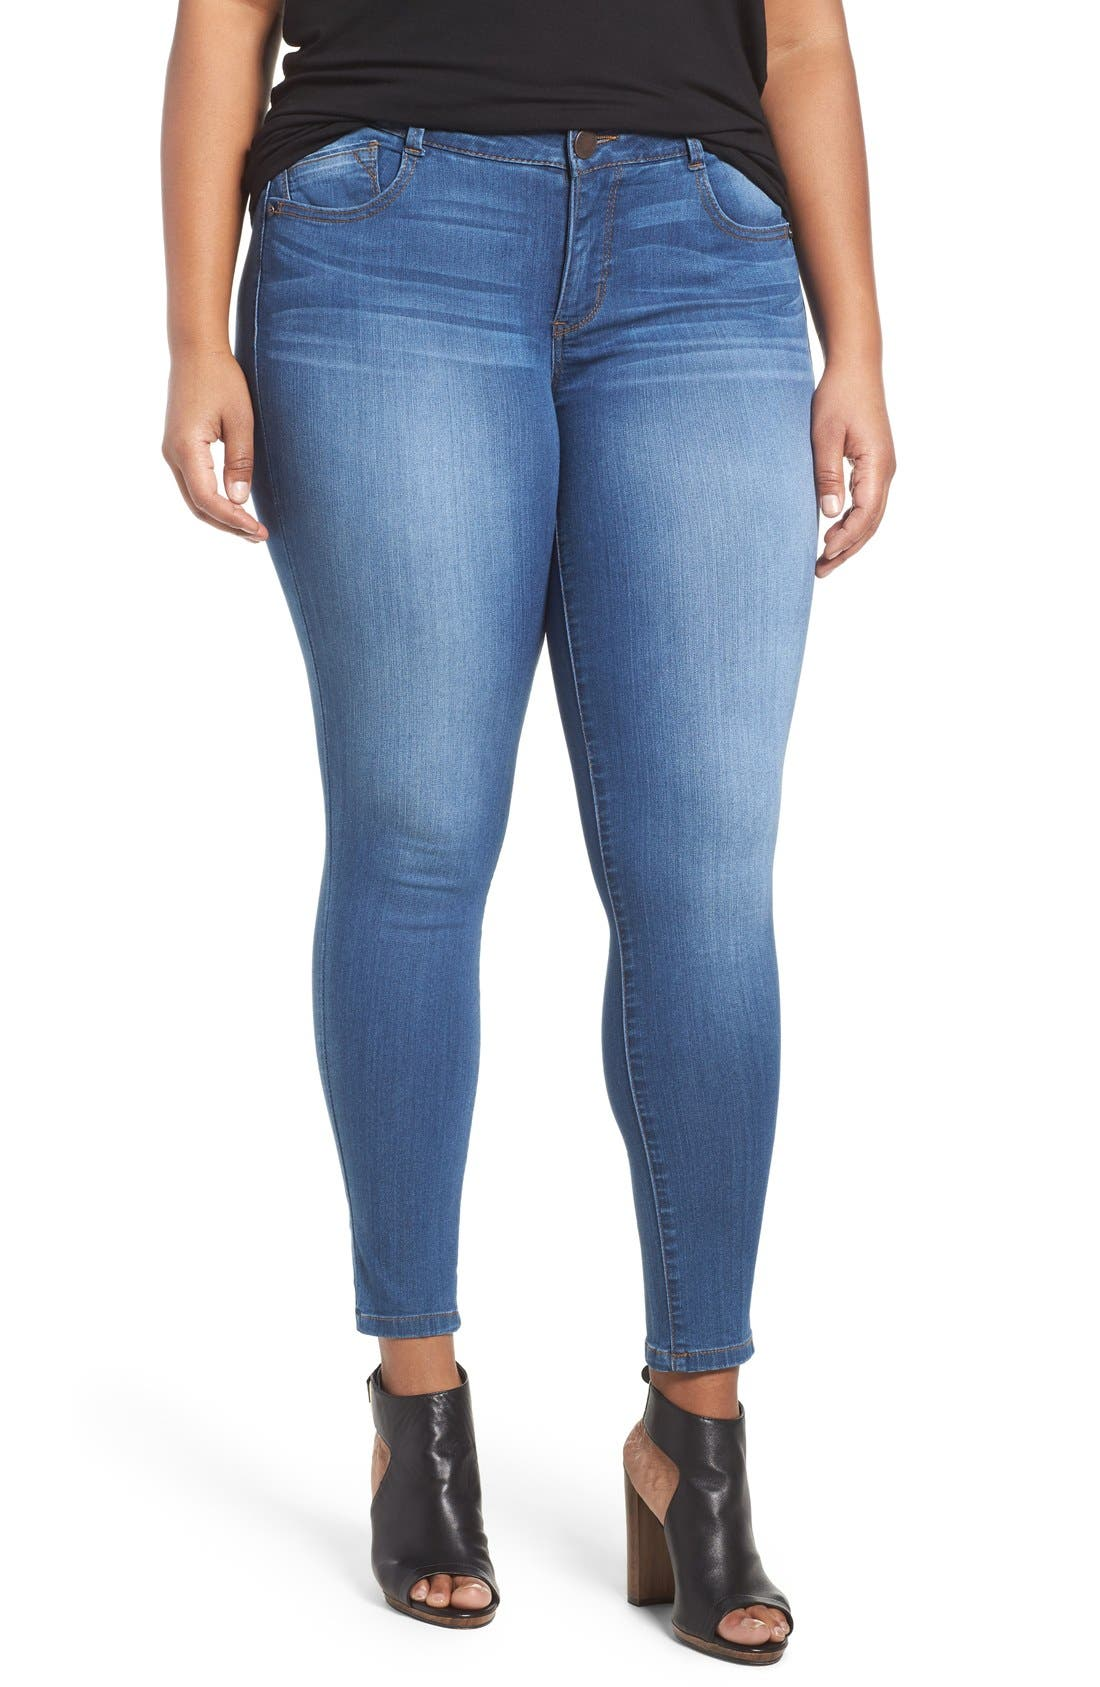 Ab-solution Stretch Skinny Jeans,                             Alternate thumbnail 6, color,                             BLUE